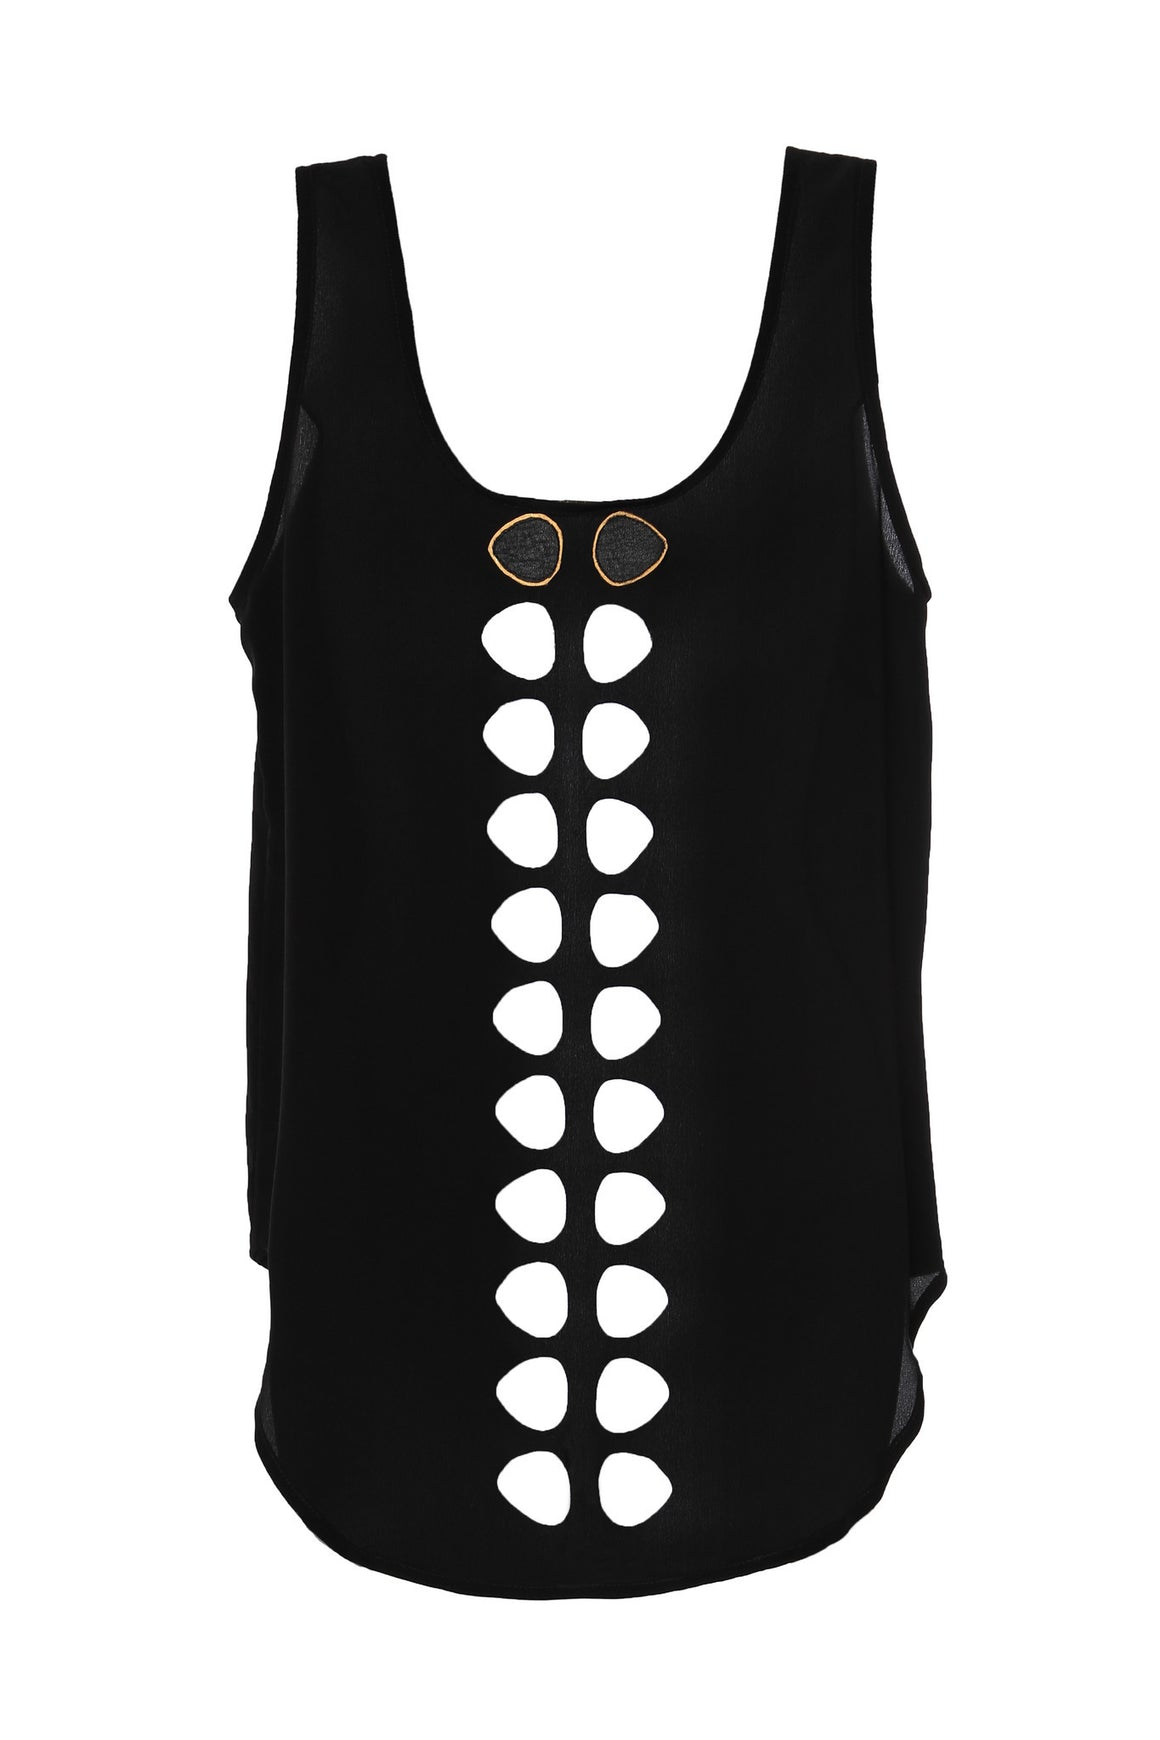 black laser cut silk tank top